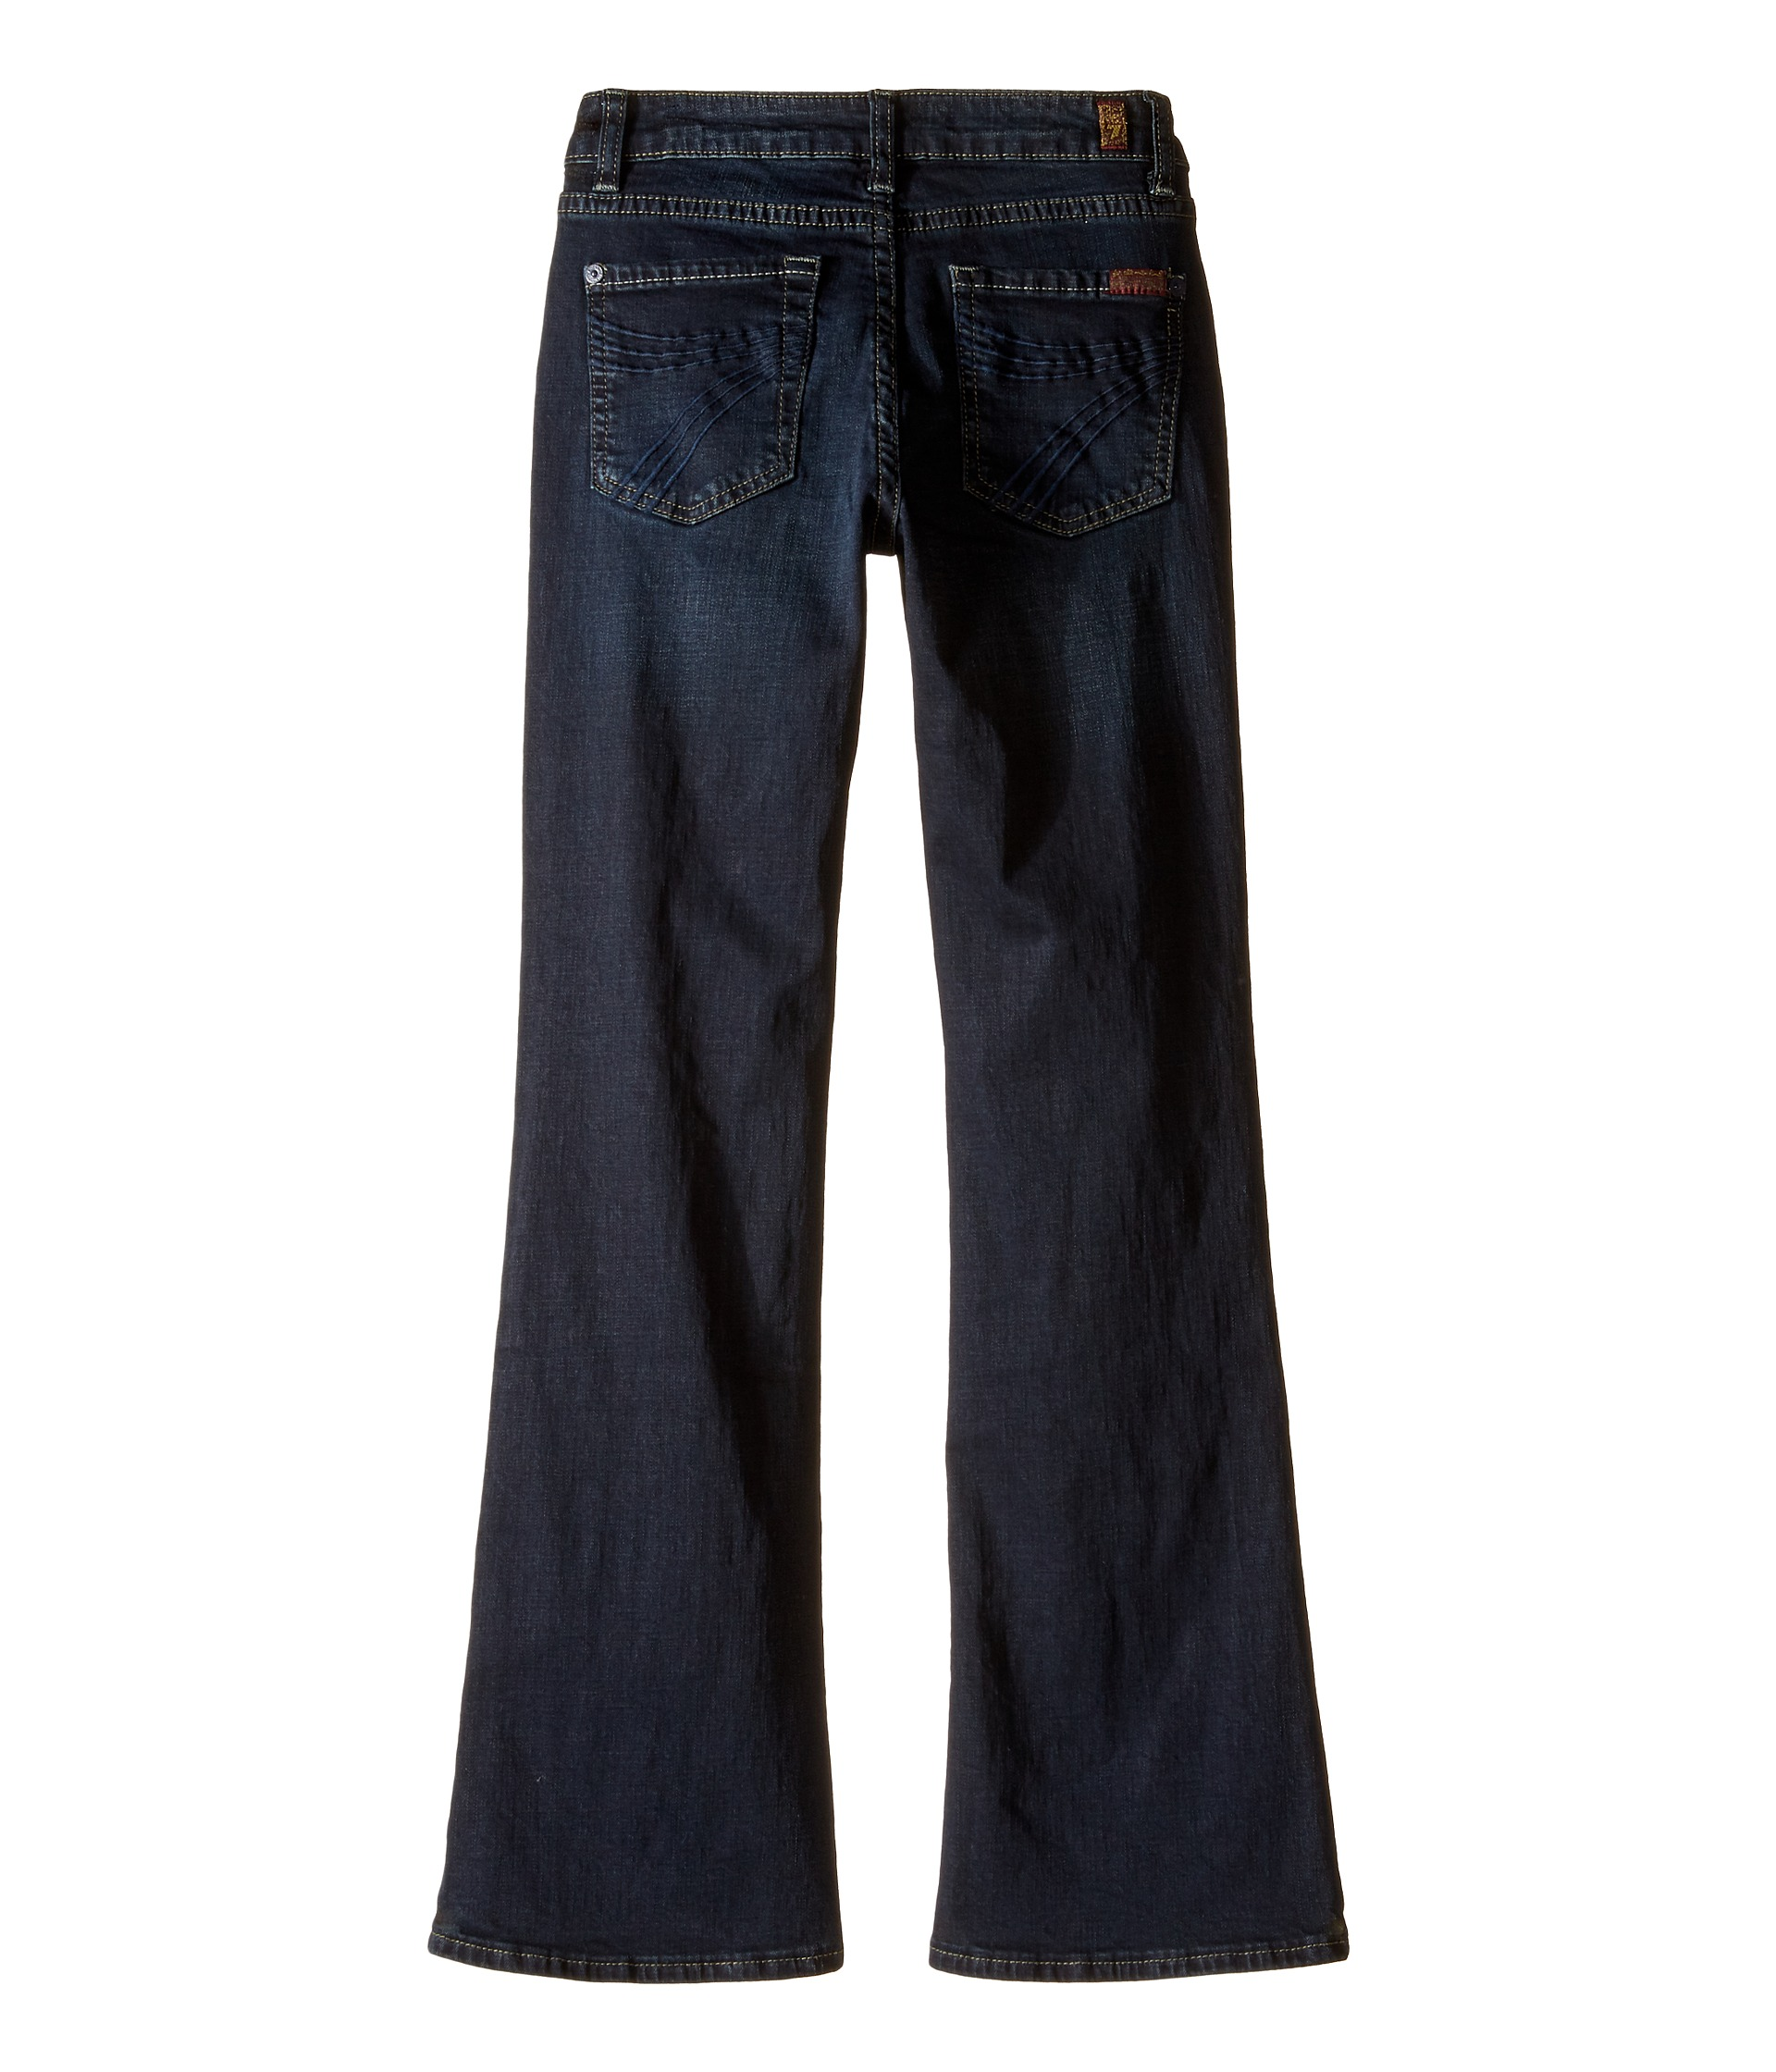 Find great deals on eBay for kids jeans size 7. Shop with confidence.